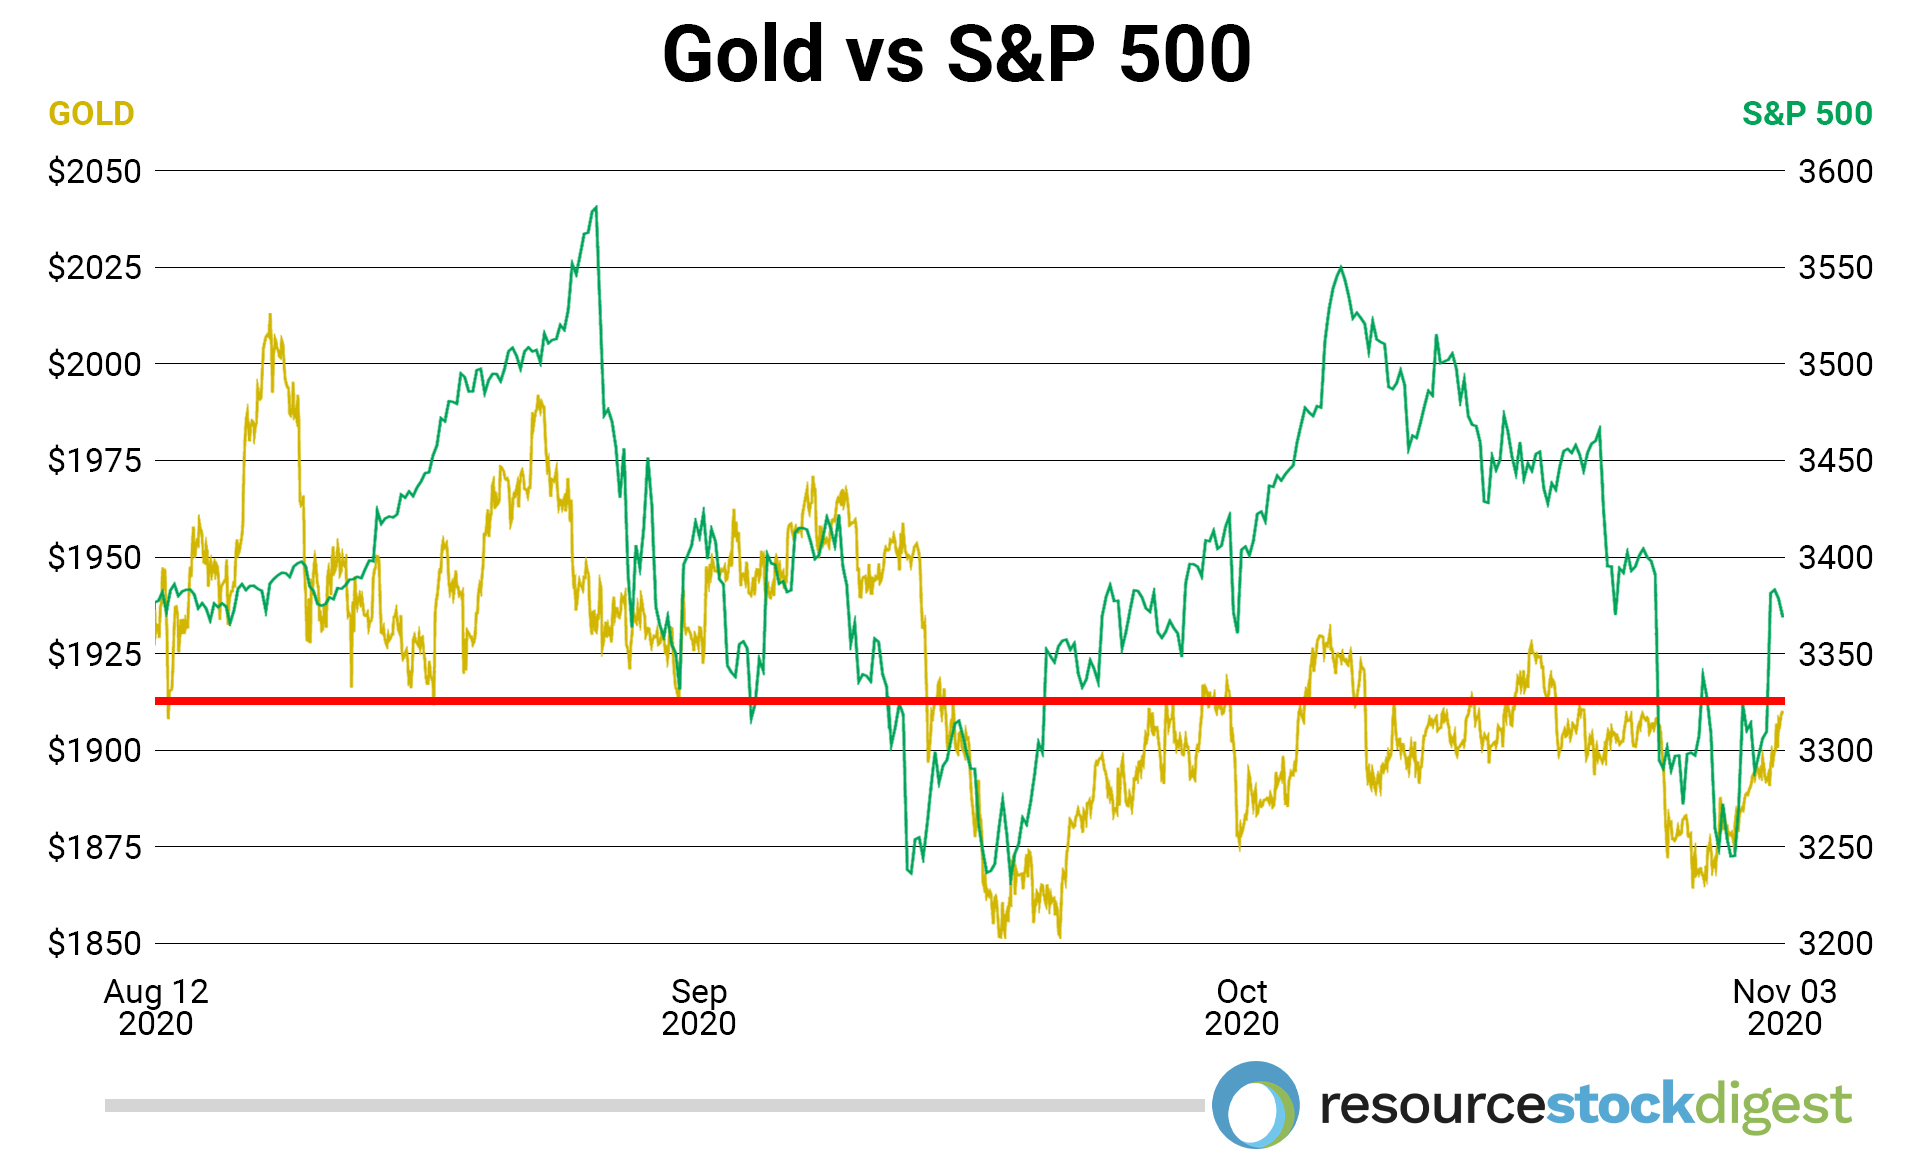 Gold vs. S&P500